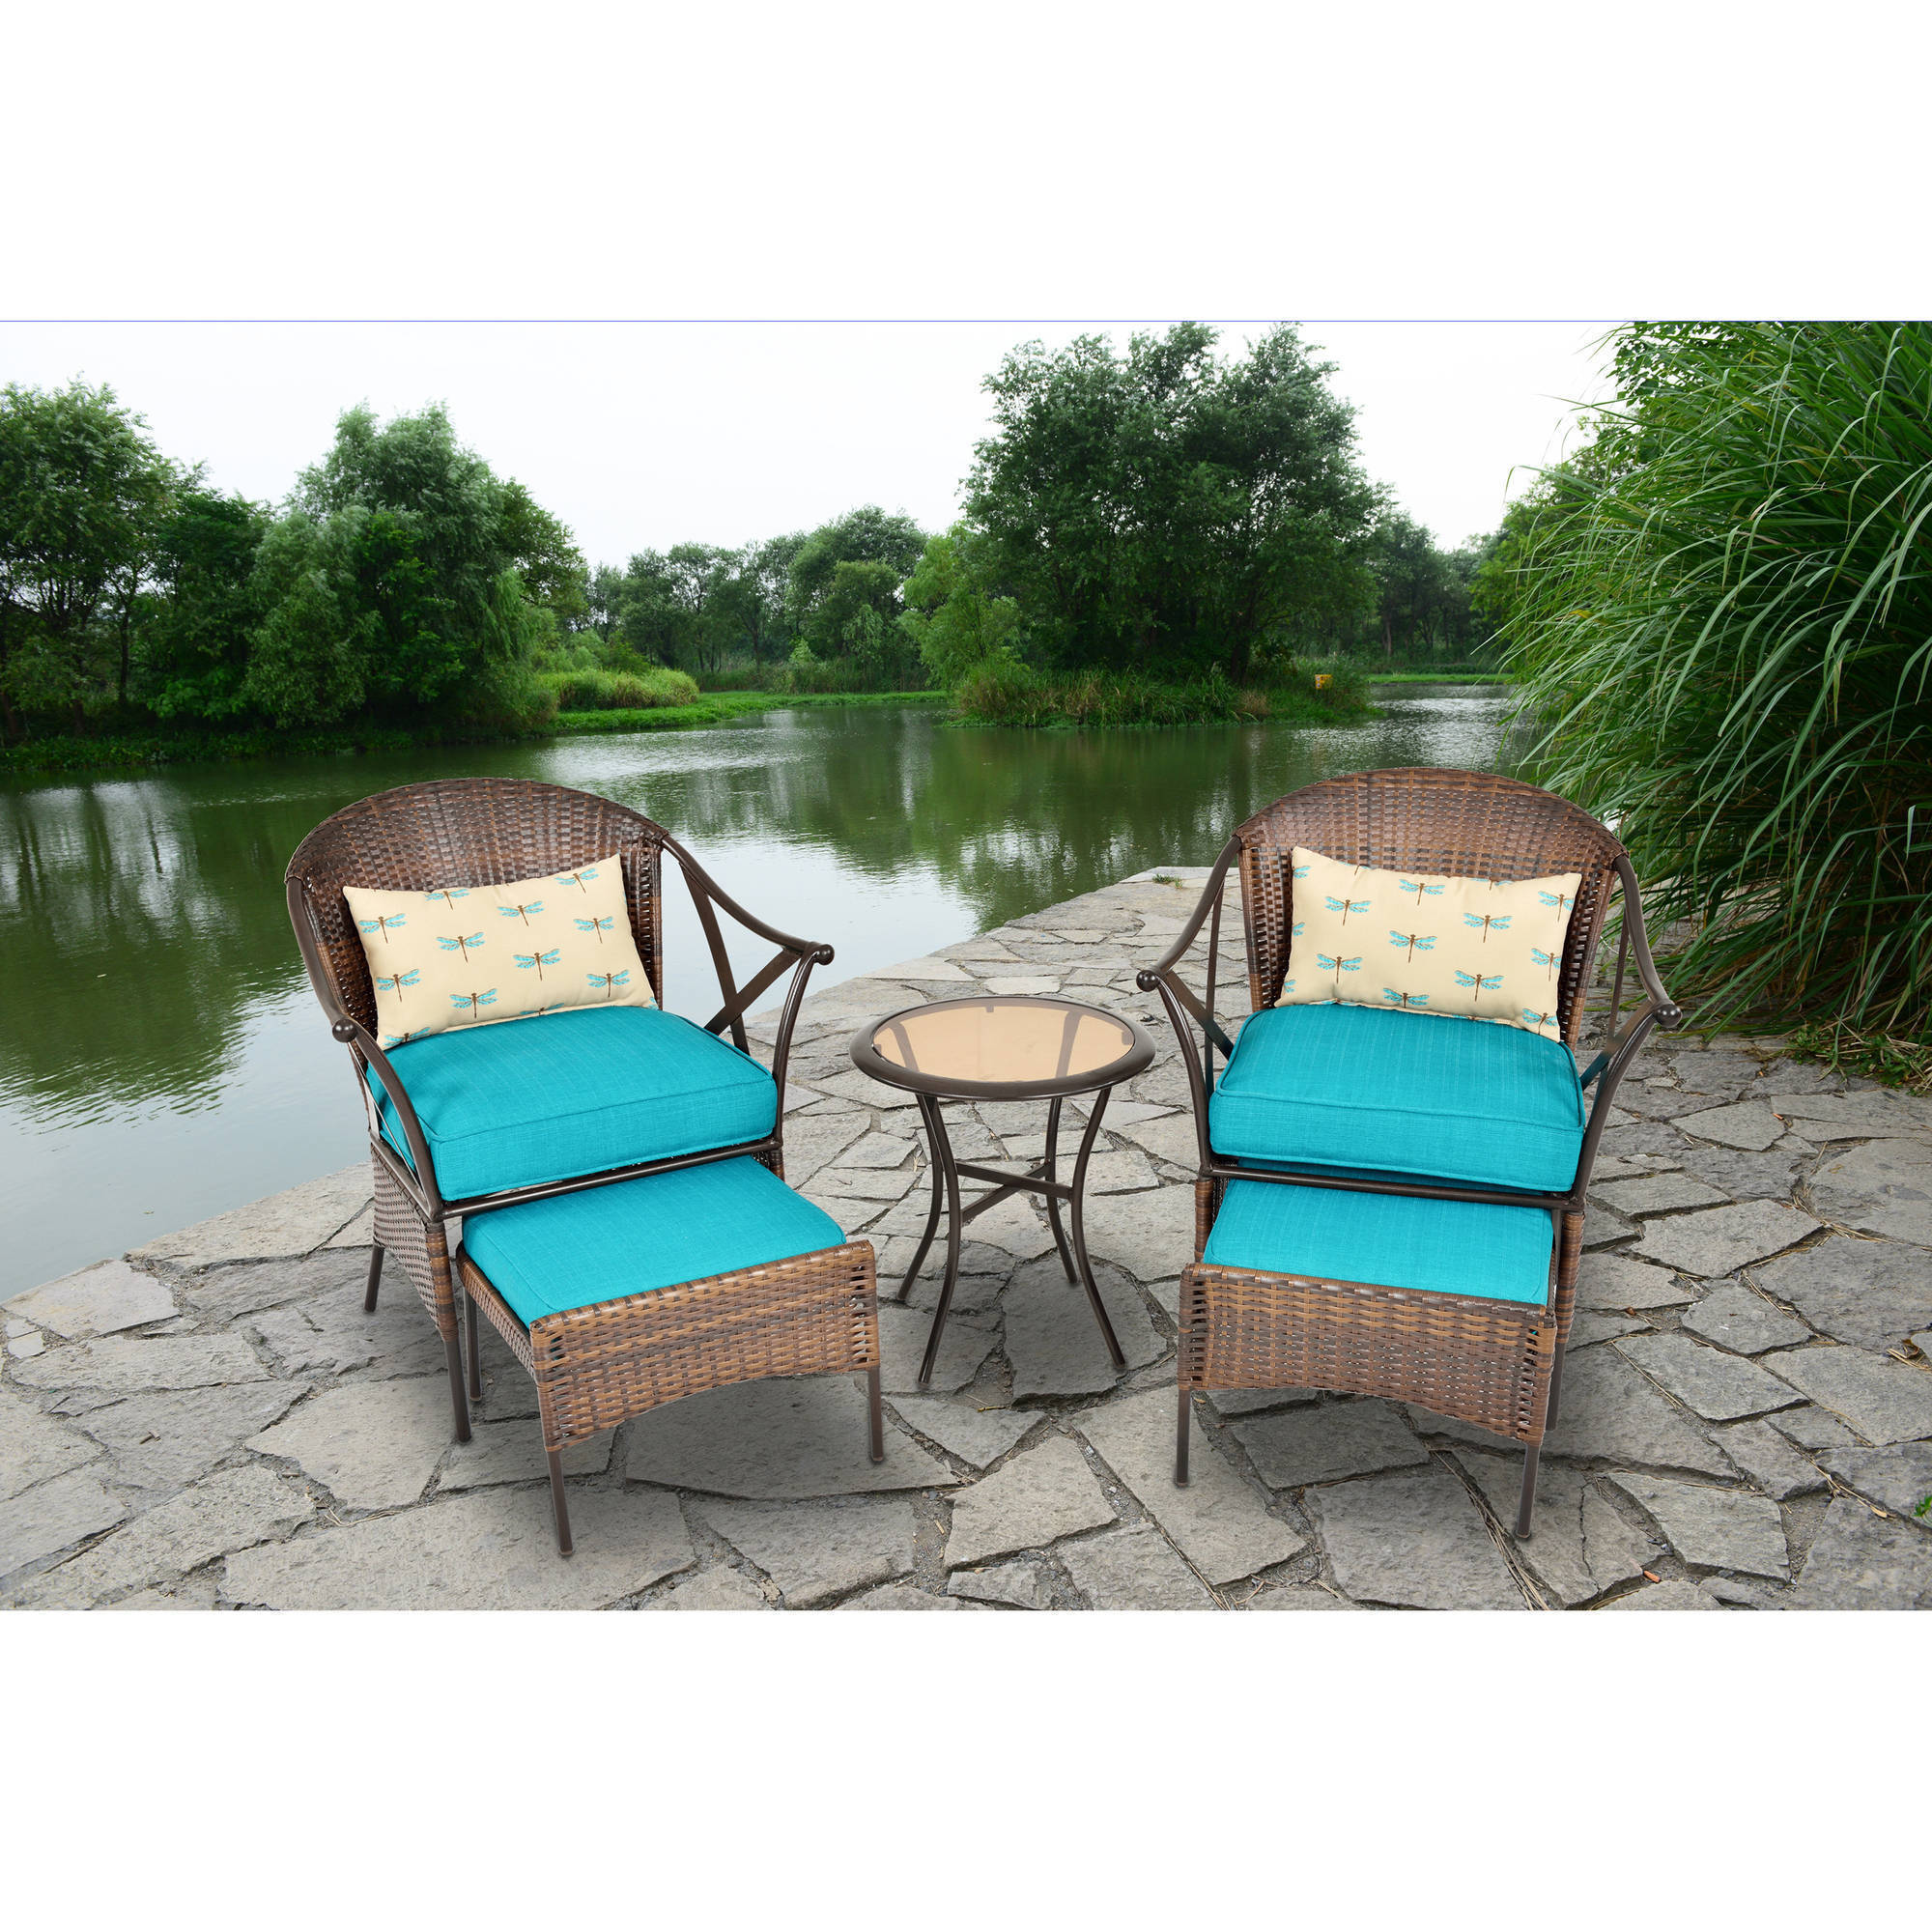 Superbe Patio Sets At Walmart